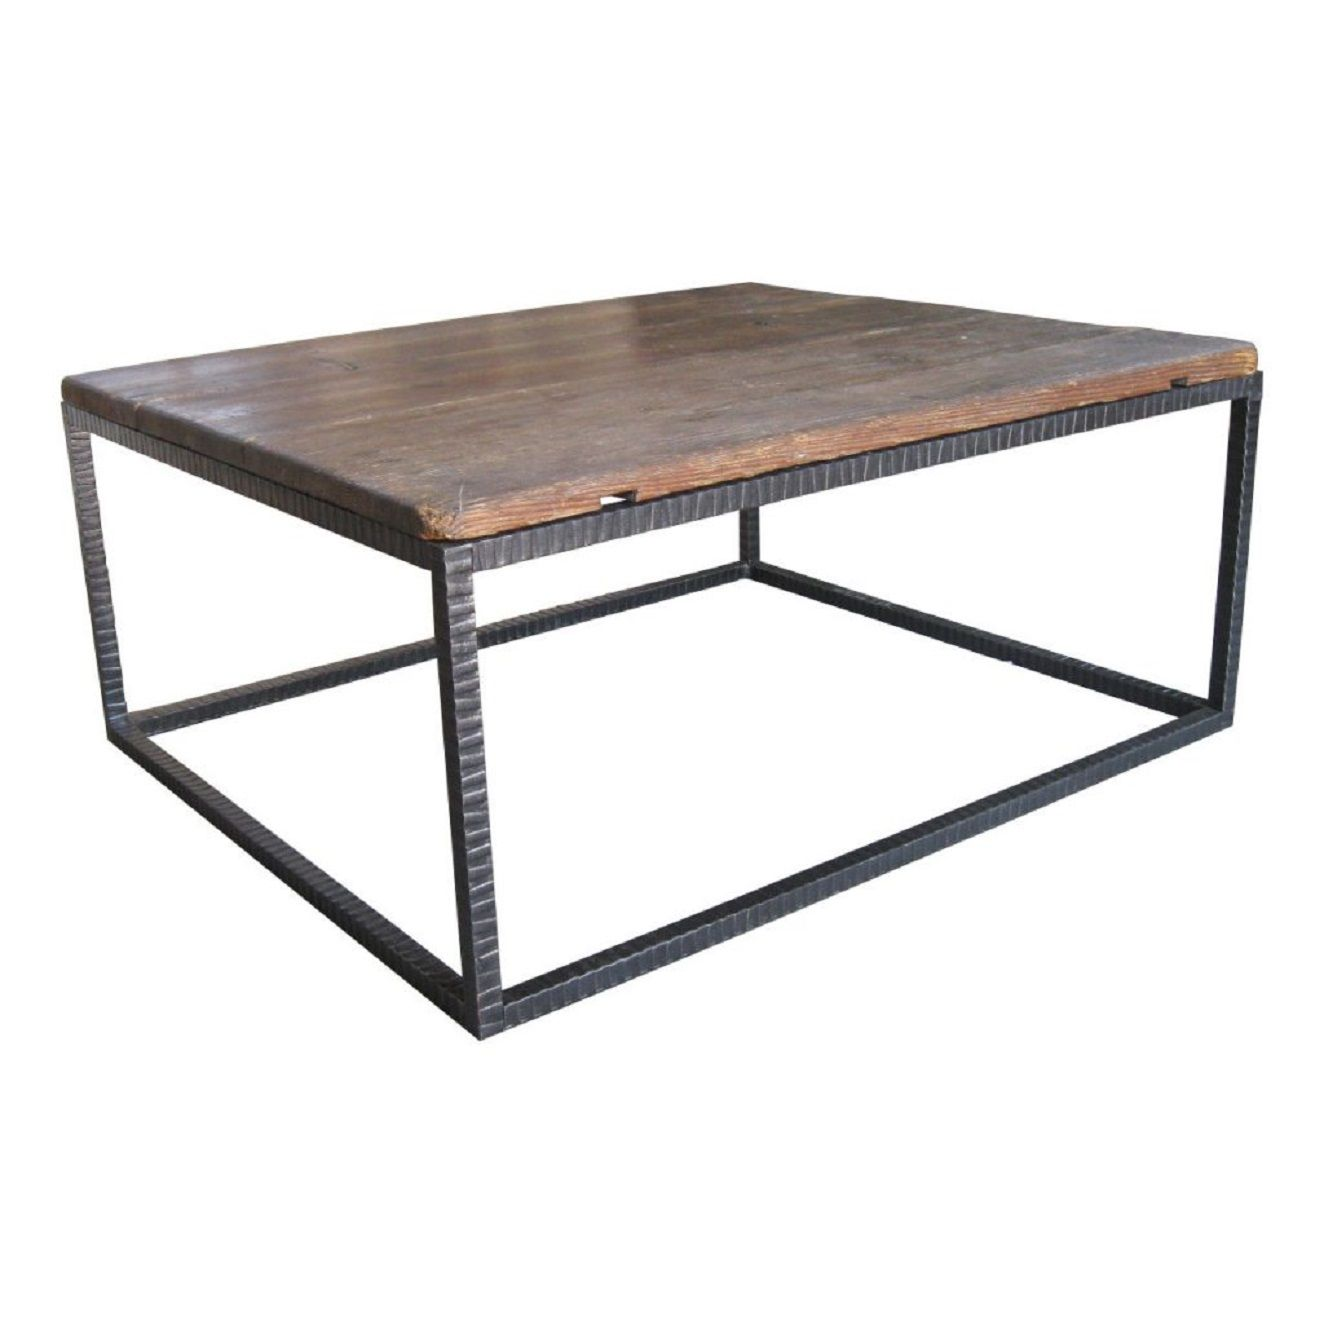 Attractive Wrought Iron Coffee Table Make Classy Your Home ...